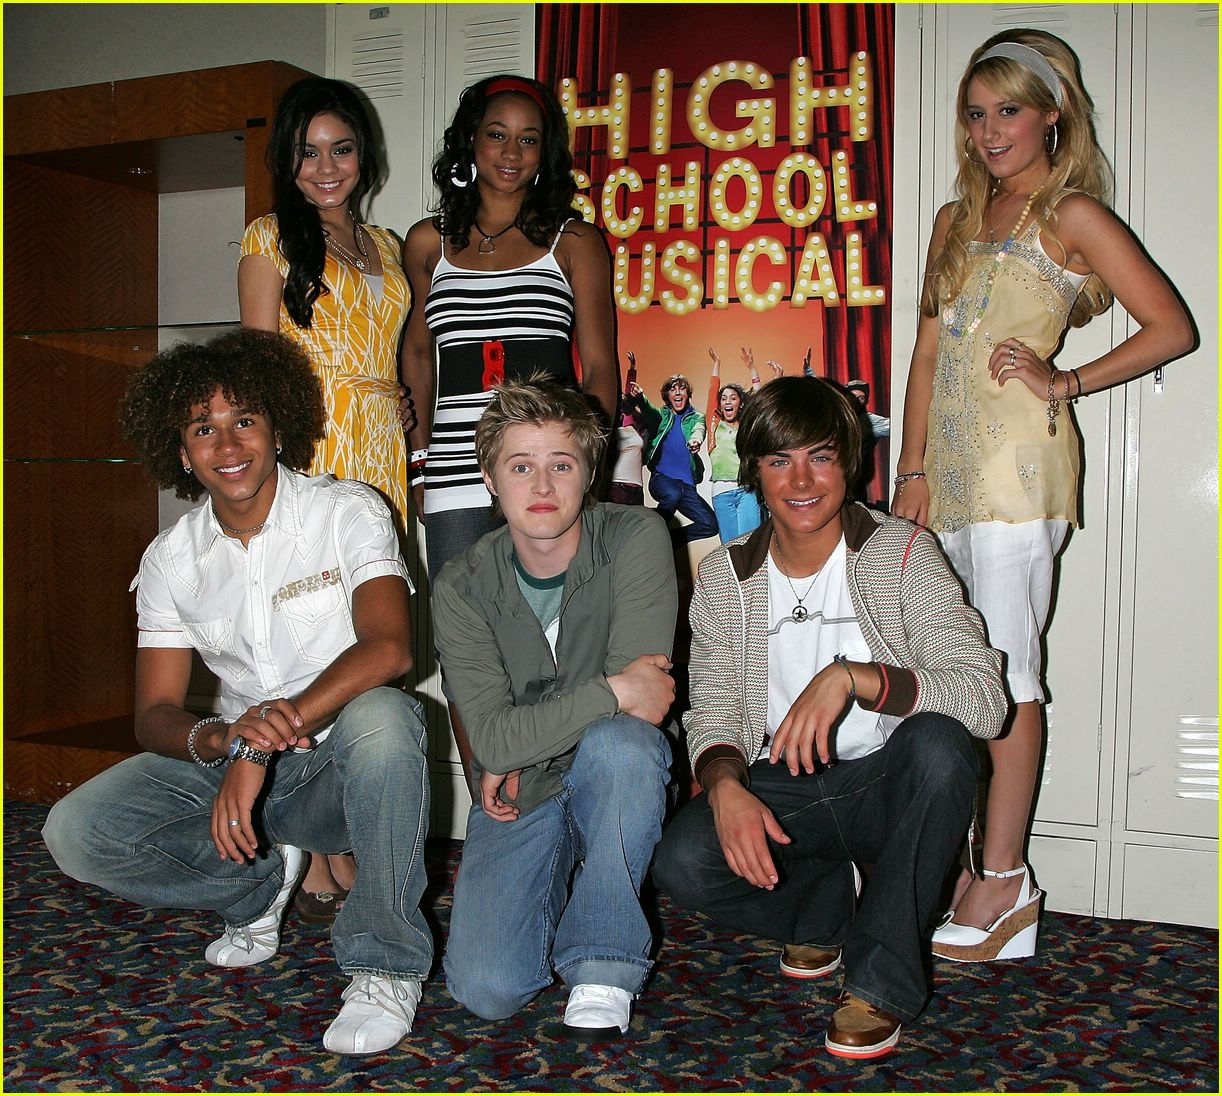 high school musical video17